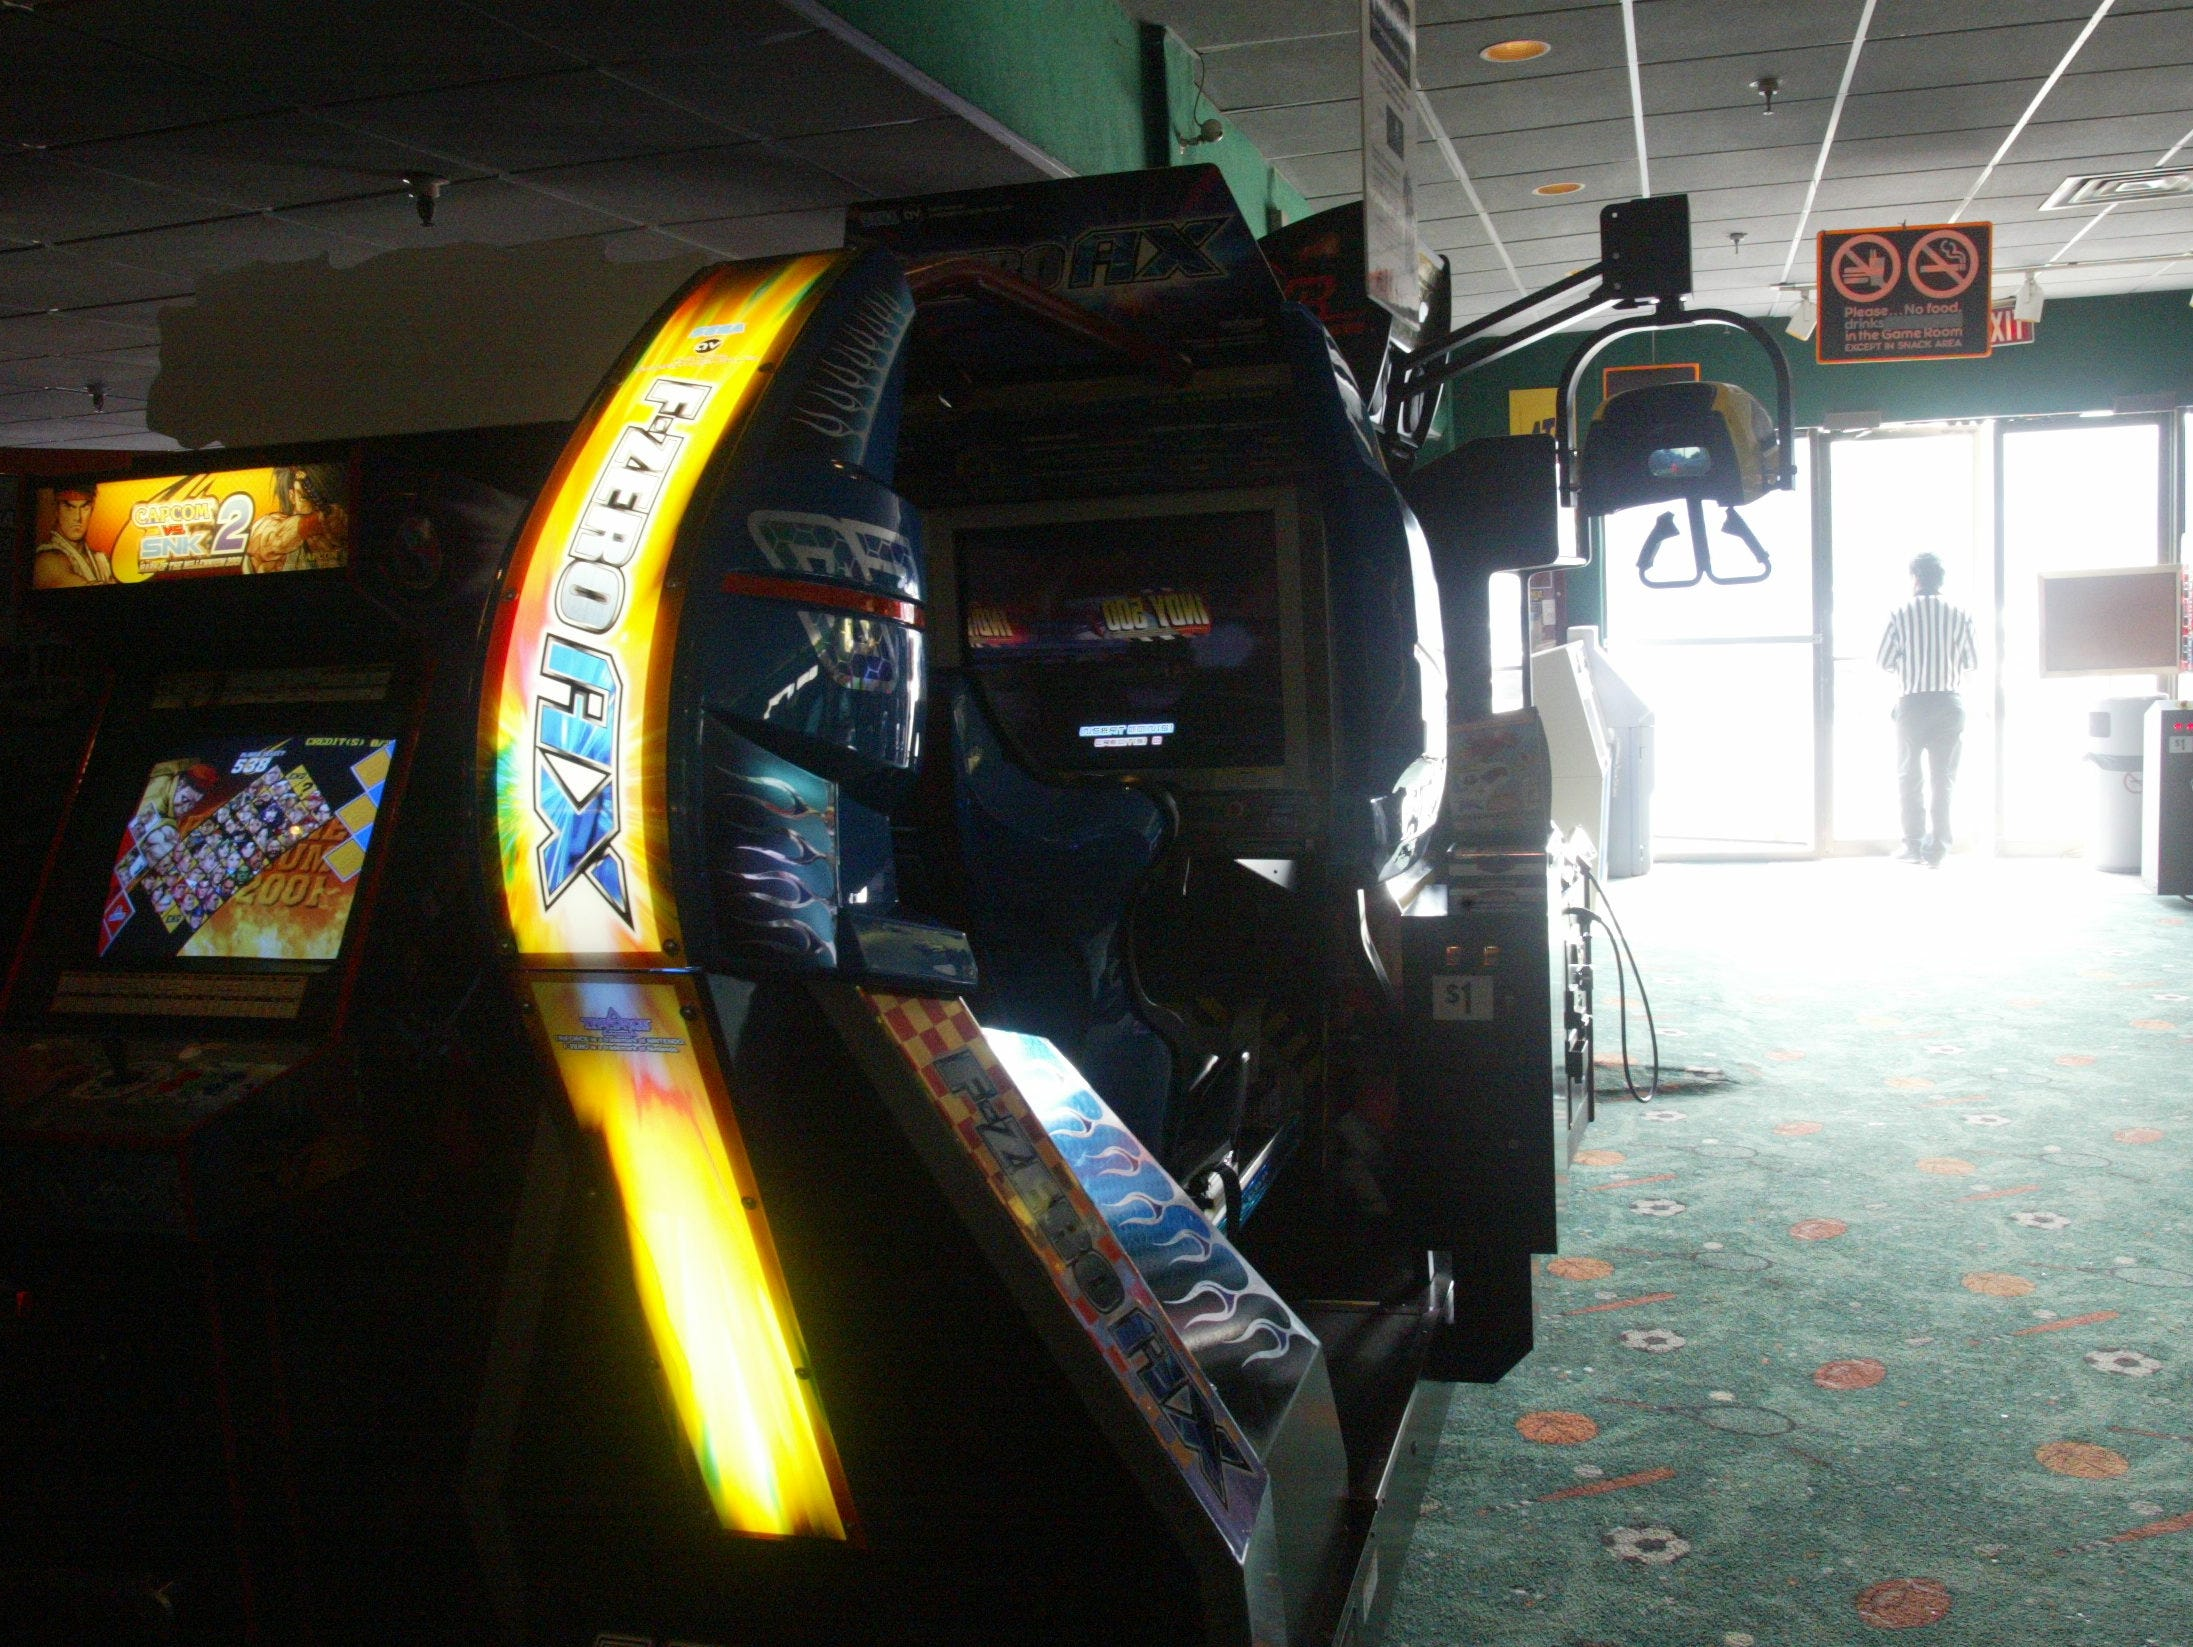 A view of some of the arcade games at Fun N Games at Willowbrook Mall in Wayne.